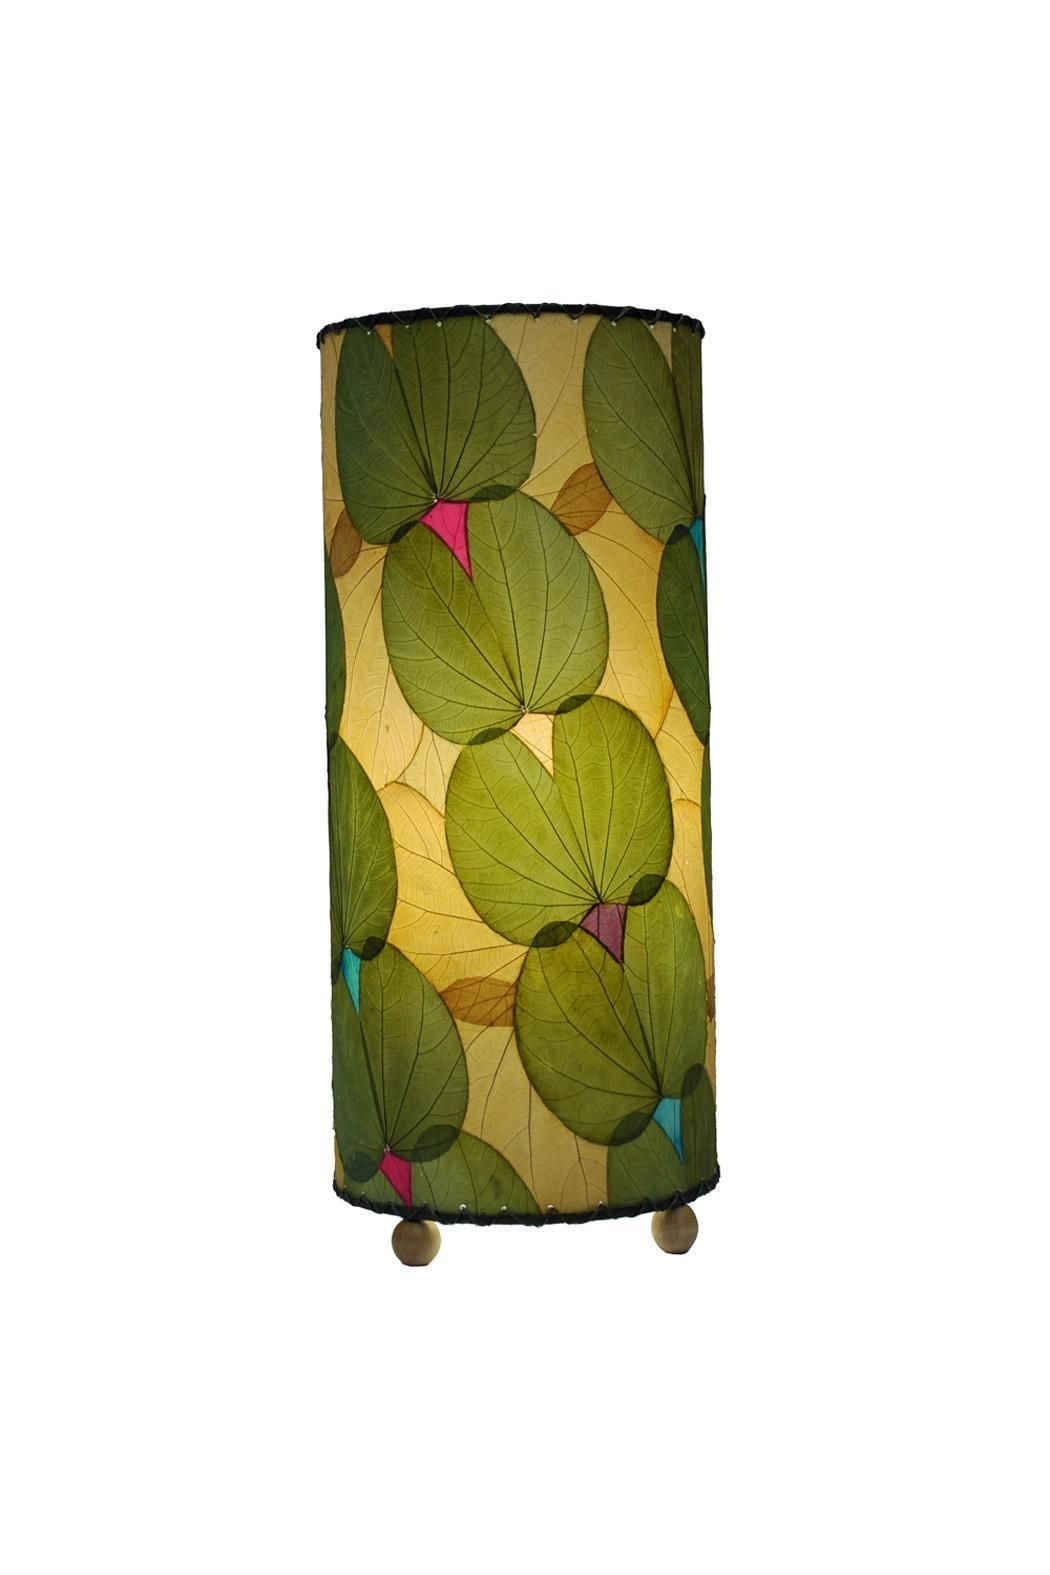 Eangee Butterfly Leaf Lamp Butterfly Leaf Table Butterfly Lamp Lamp